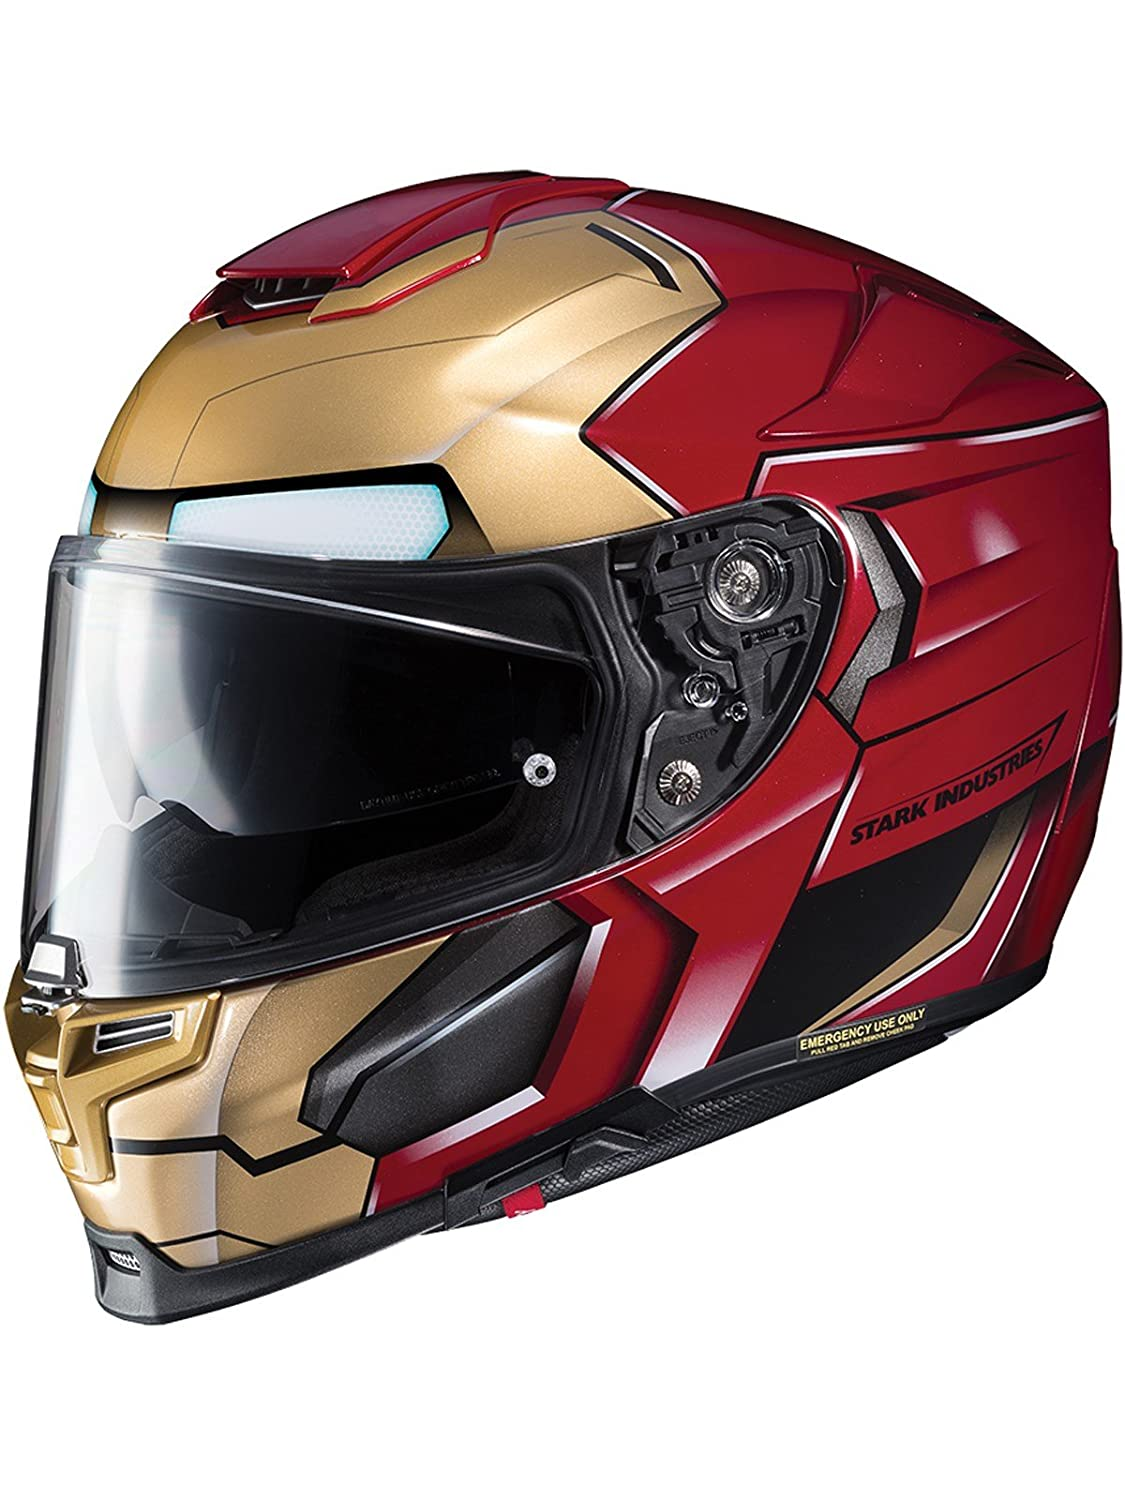 Casco Moto Hjc Marvel Rpha 70 Ironman Homecoming Rojo-Oro (L , Rojo): Amazon.es: Deportes y aire libre